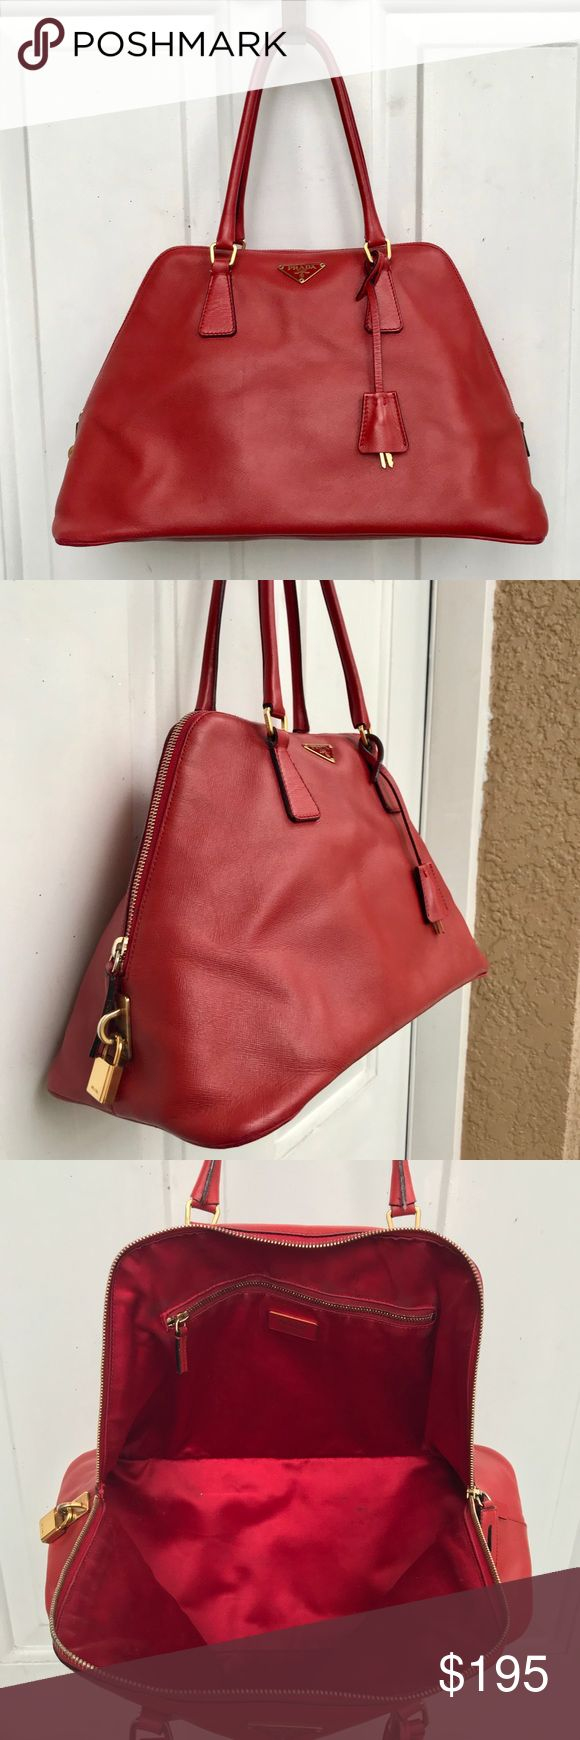 Vintage Prada Handbag Vintage Prada handbag still in great condition. I purchased this handbag at an estate sale. I do not know if it's a real Prada but the quality looks really good. Handbag has been used but looks pretty clean. If you have any questions please do not hesitate to ask. Thank you 😊 Prada Bags Satchels